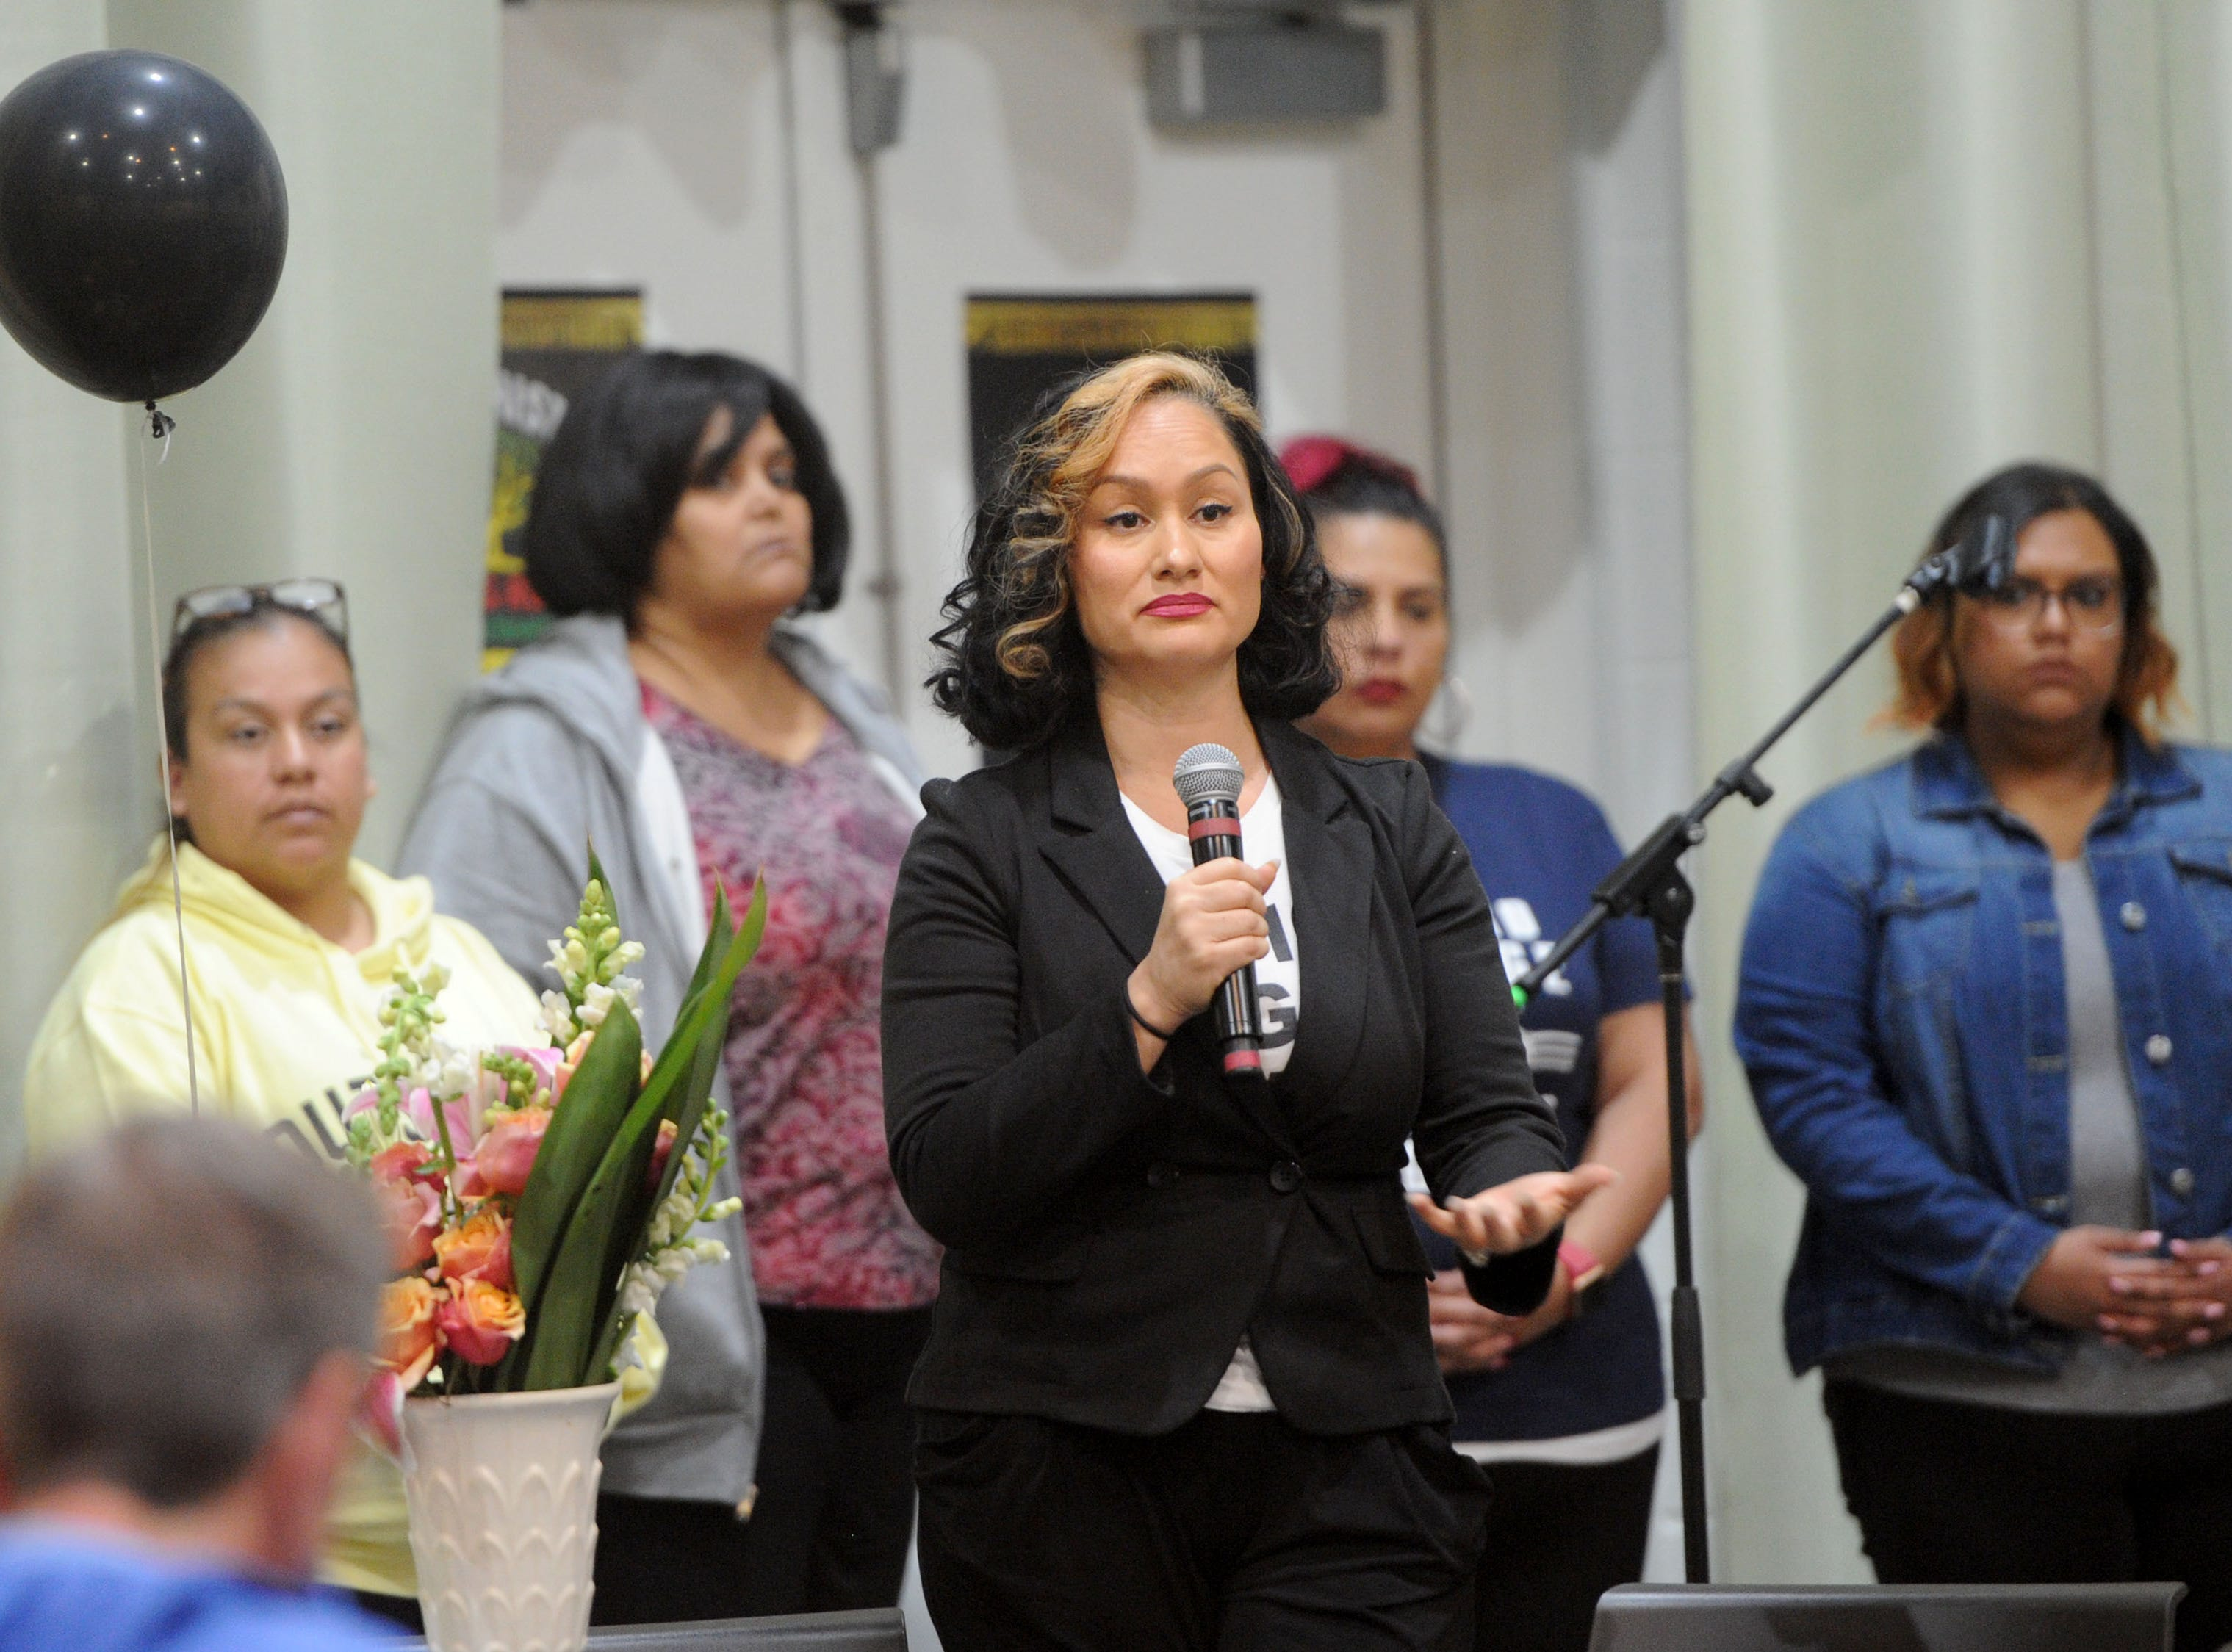 Carmen Perez, nationally known activist and Oxnard native, takes some  questions after her speech Wednesday at a Black History Month event at Oxnard College. Perez is best known as being one of the co-chairs of the national Women's March movement.